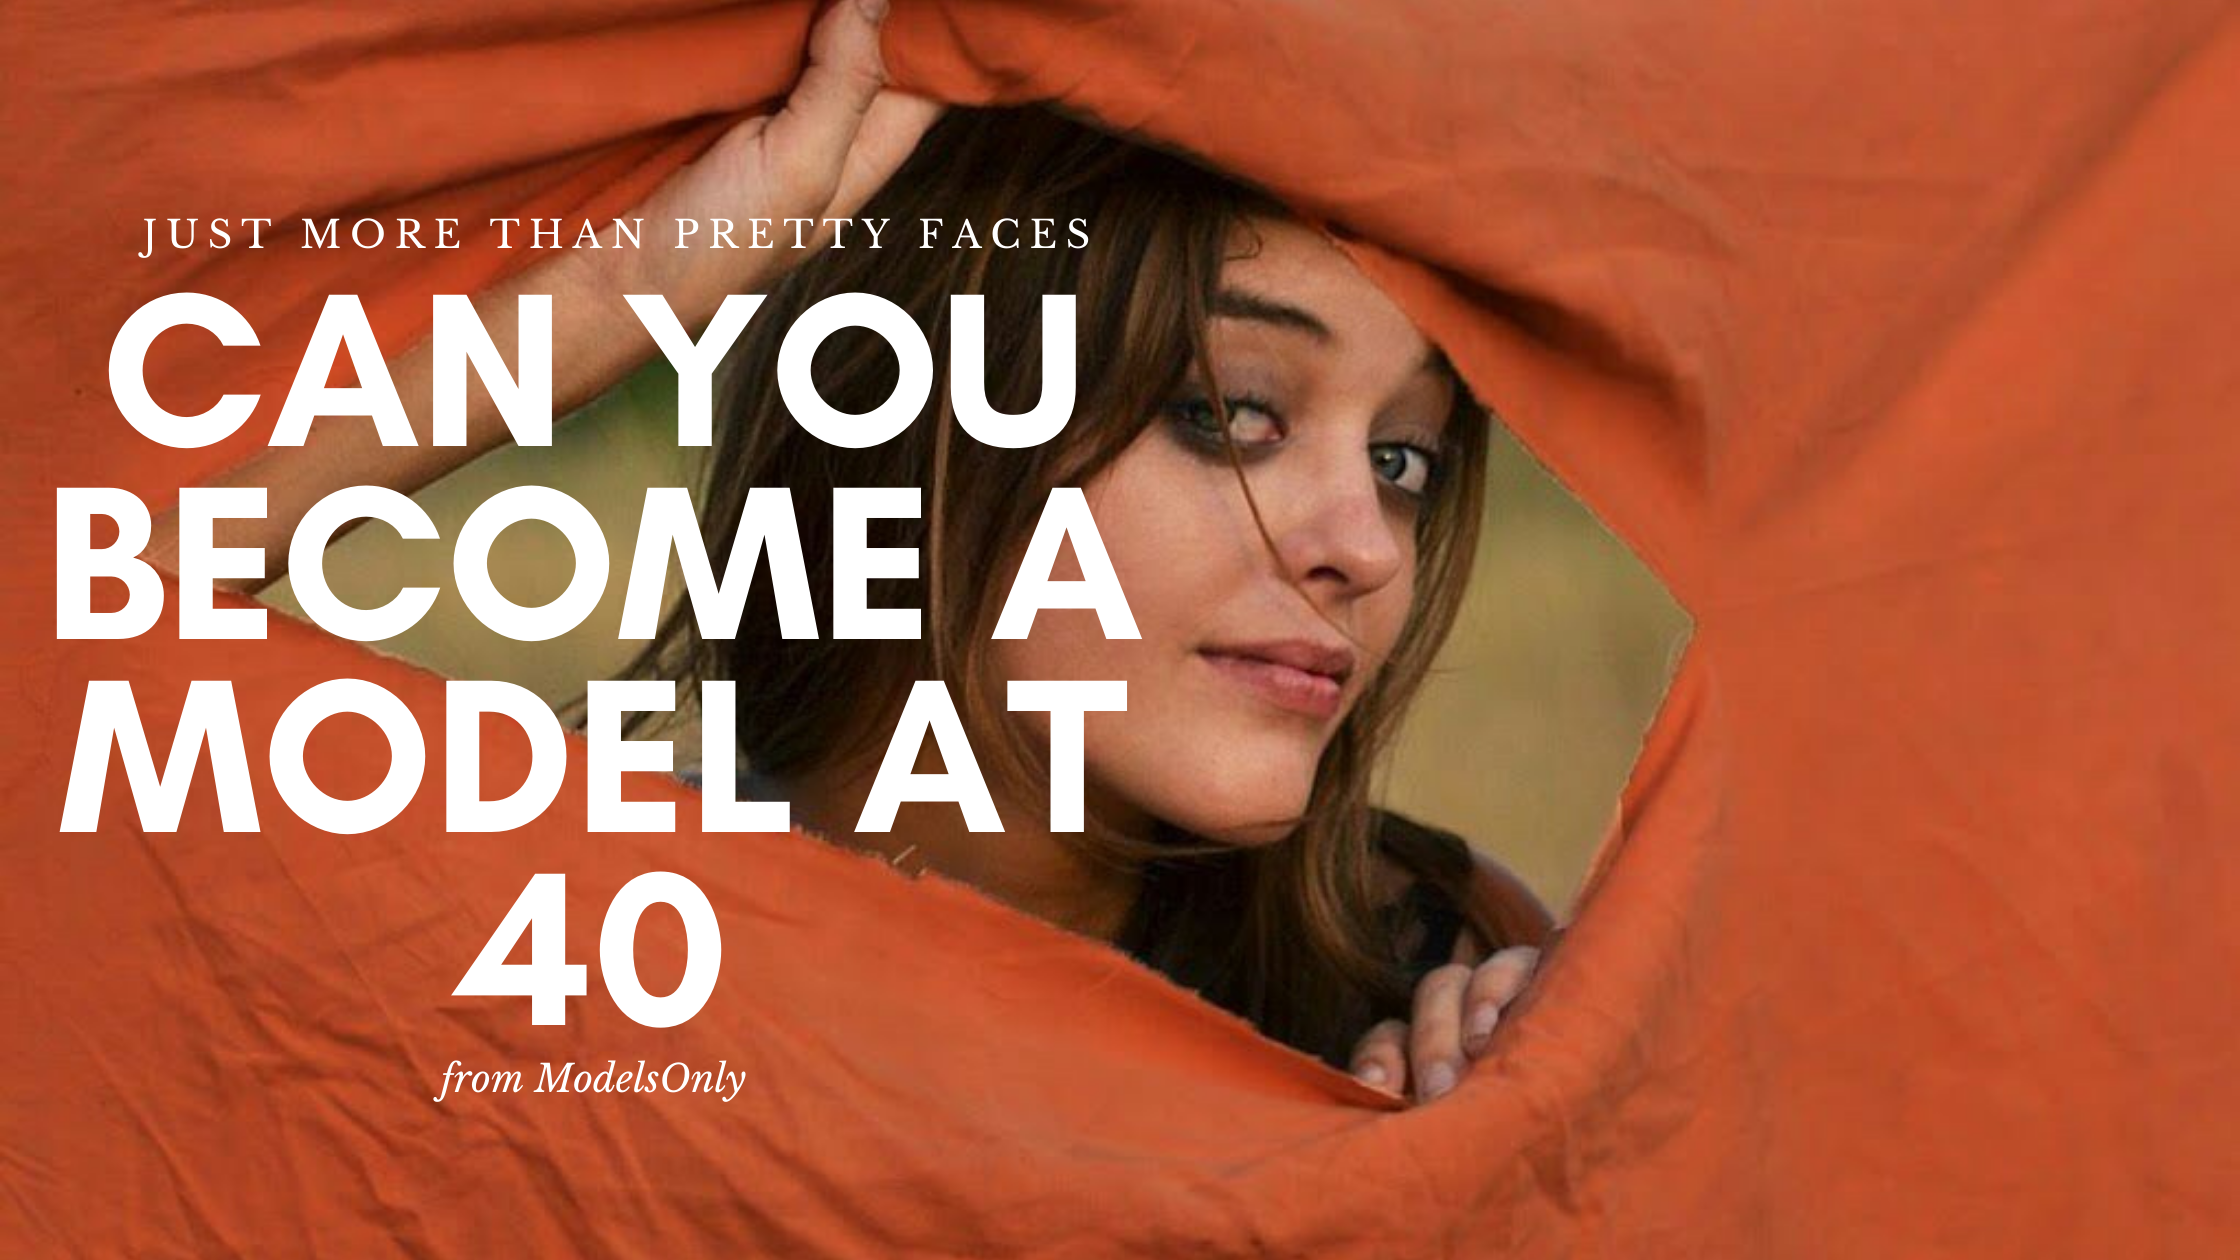 Can you Become a Model at 40